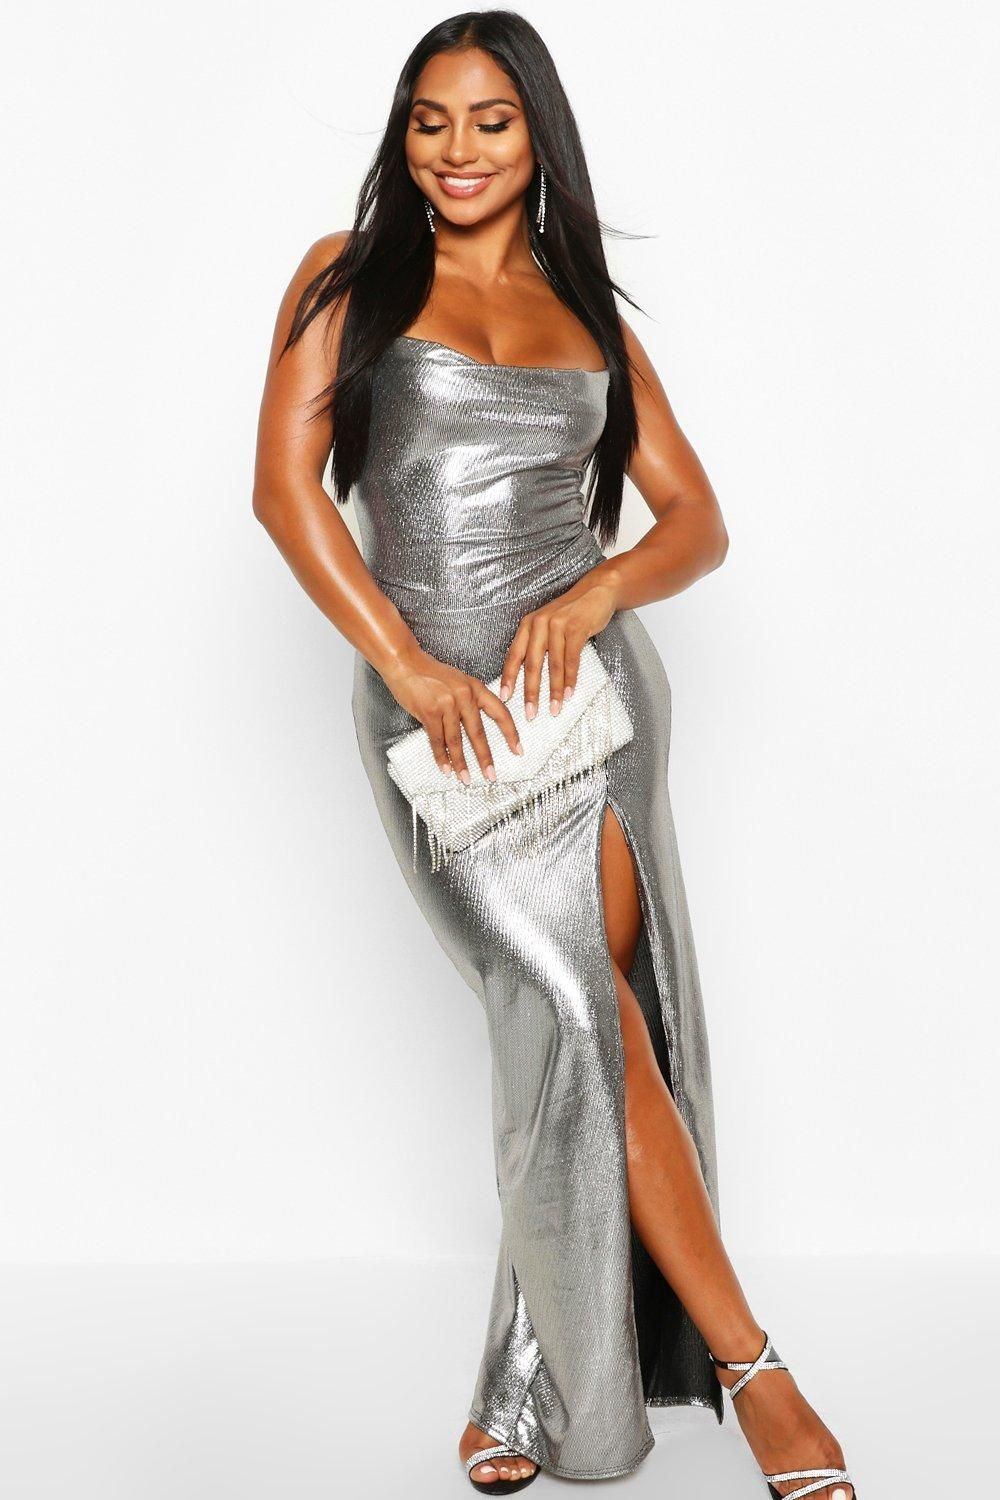 Get ready for party season babe as weve got dresses for every occasion with everything from Christmas party dresses to show up and show off in to sequin dresses to sparkl...